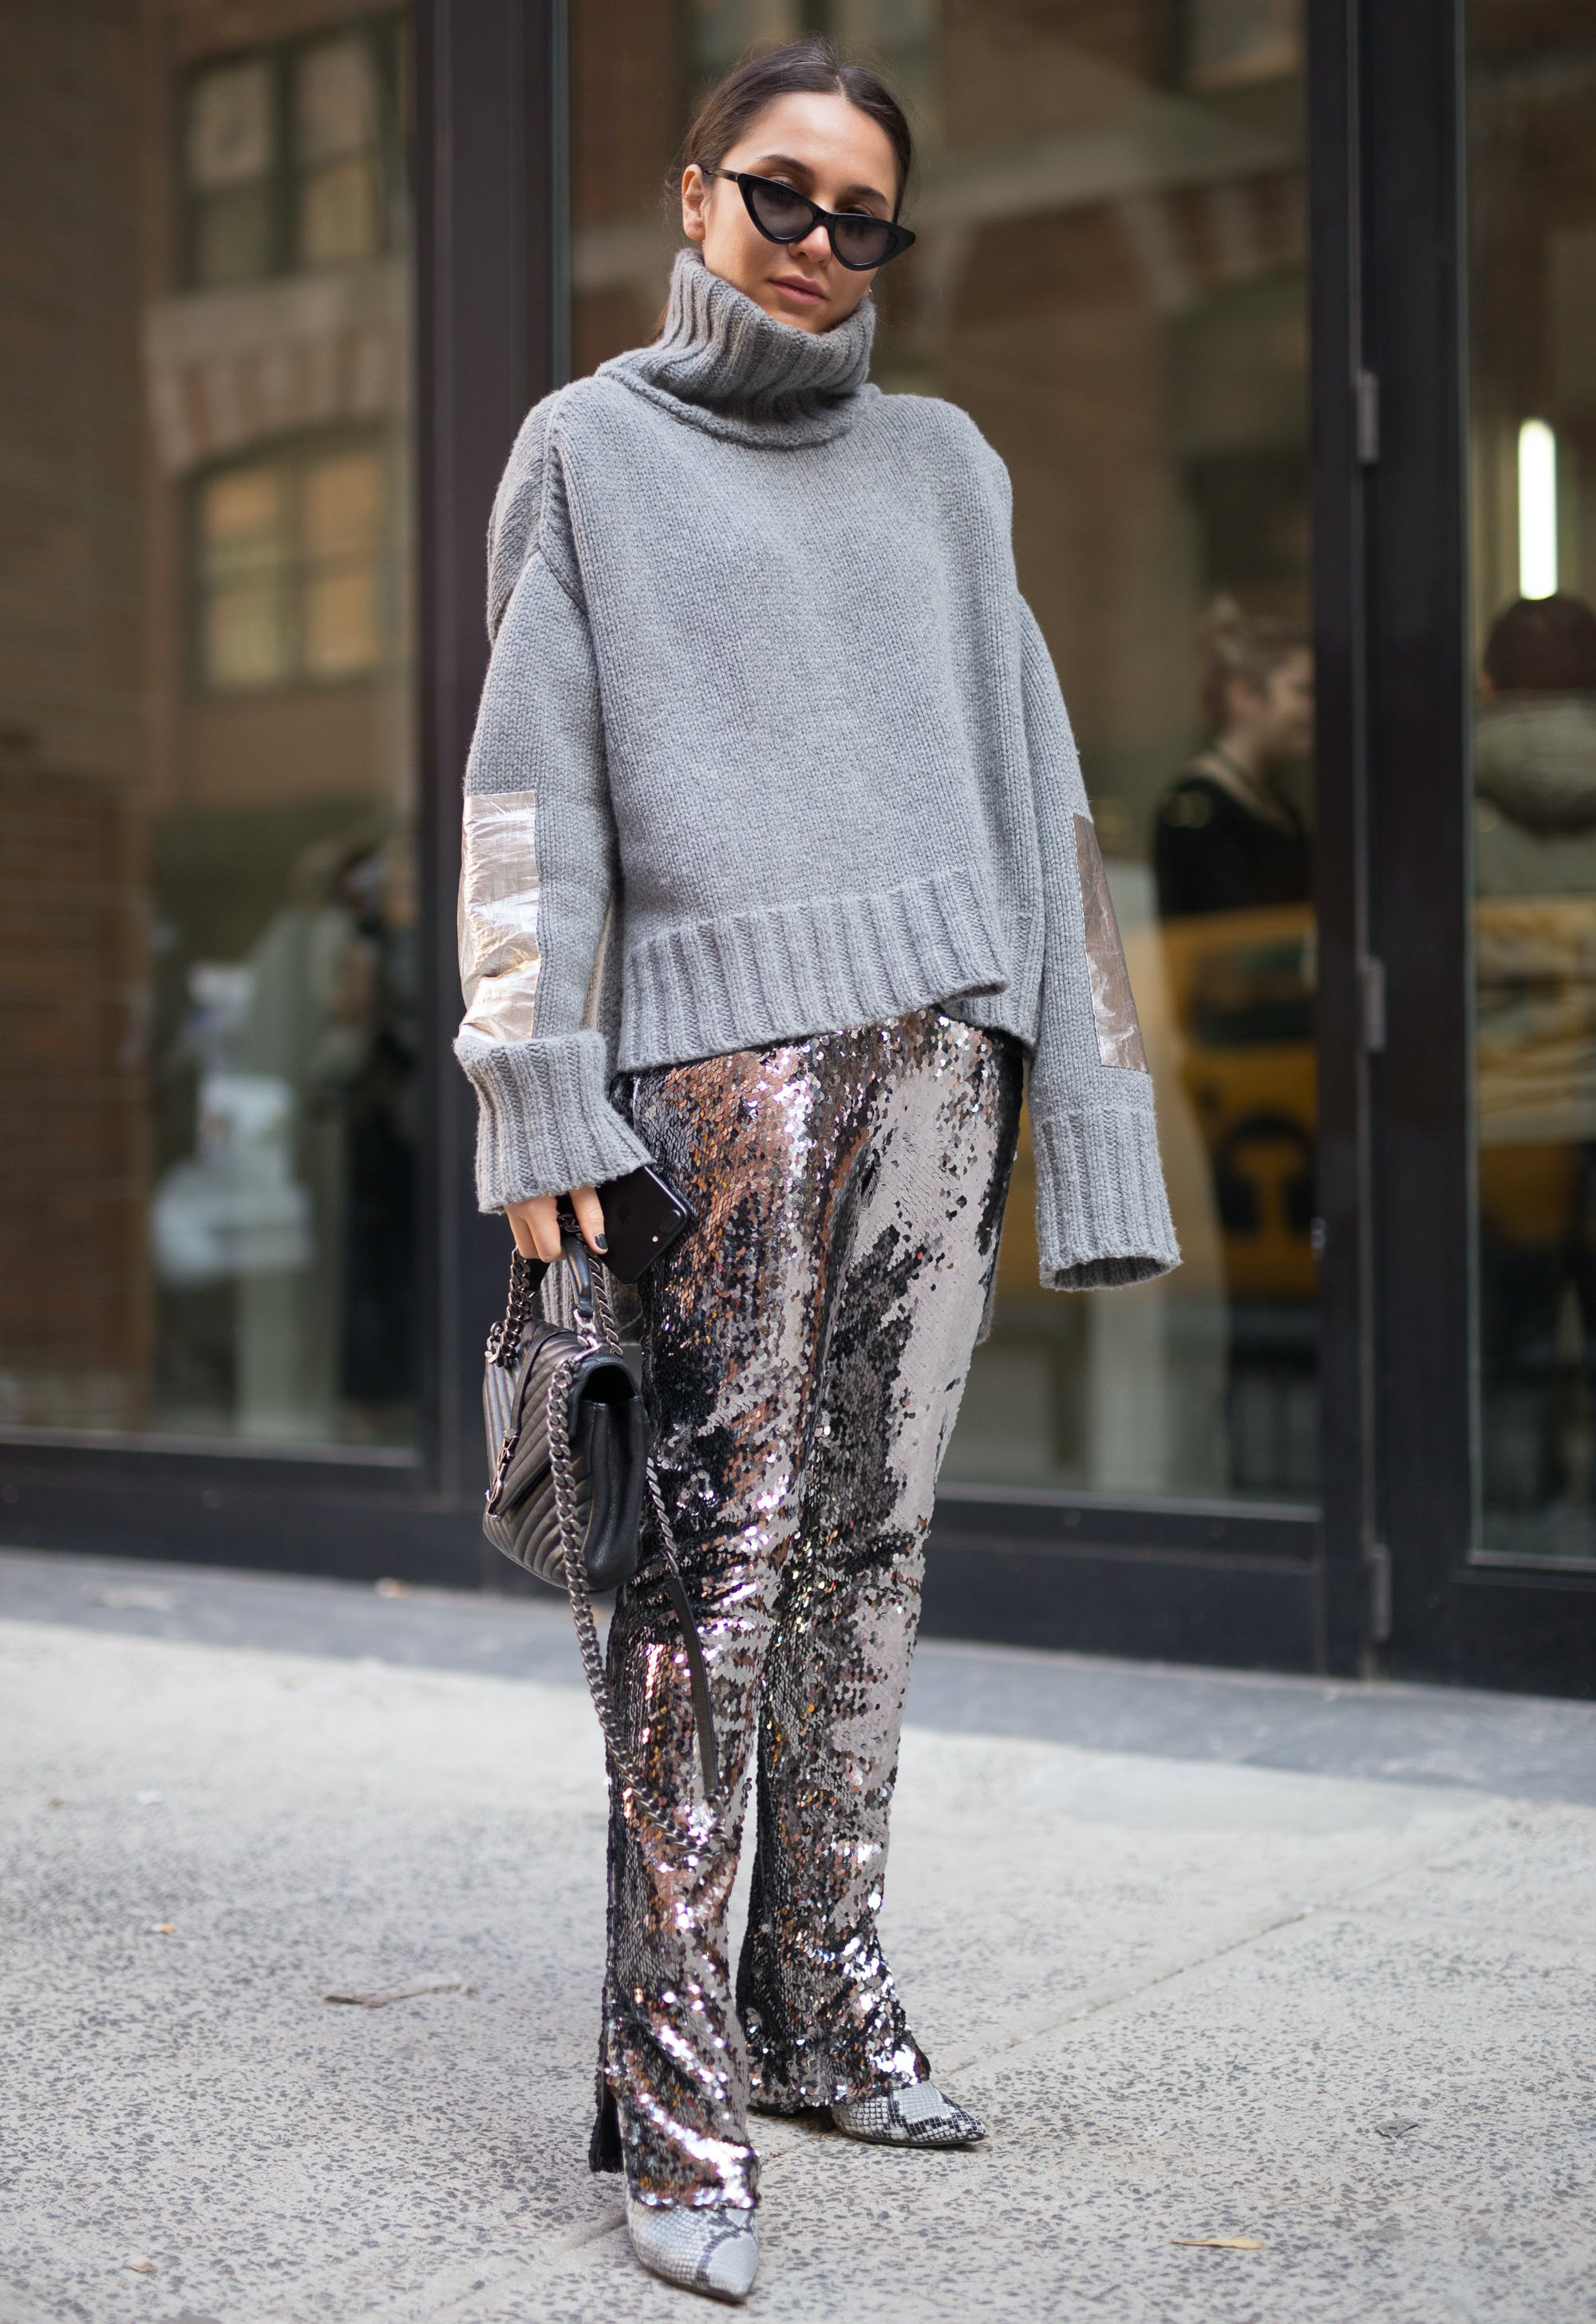 woman wearing a gray sweater and sequin pants